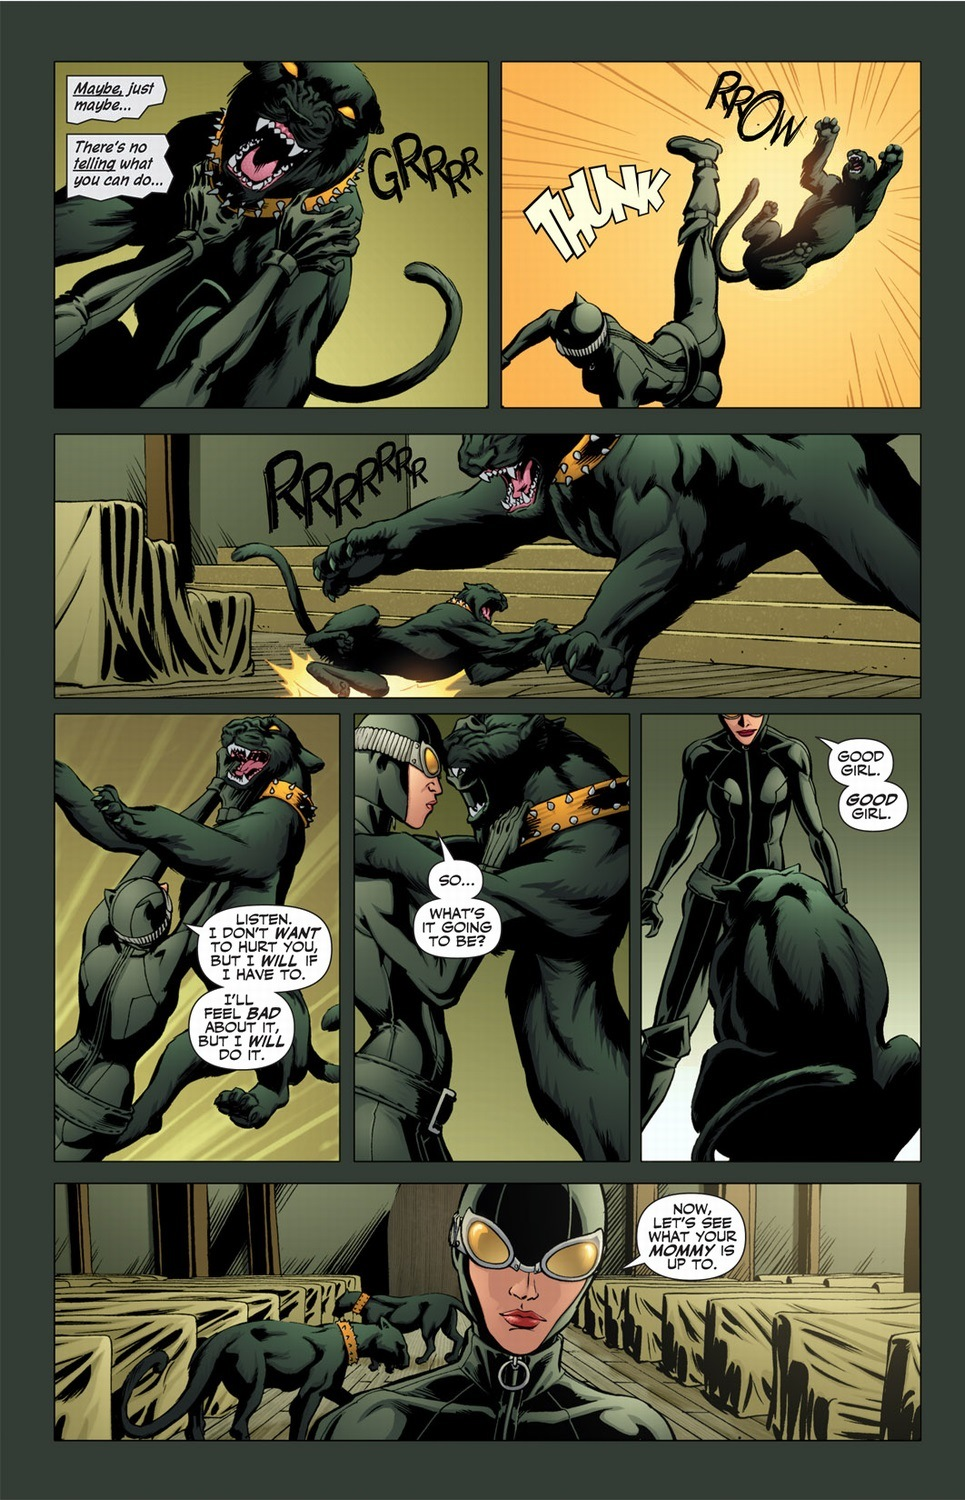 Catwomanu0027s sister Maggie becomes a nun and eventually a crazy vengeful nun because of that Black Mask incident. The poor girl didnu0027t stand a chance when she ... & Catwoman with superpowers Pt. 1 | Arousing Grammar